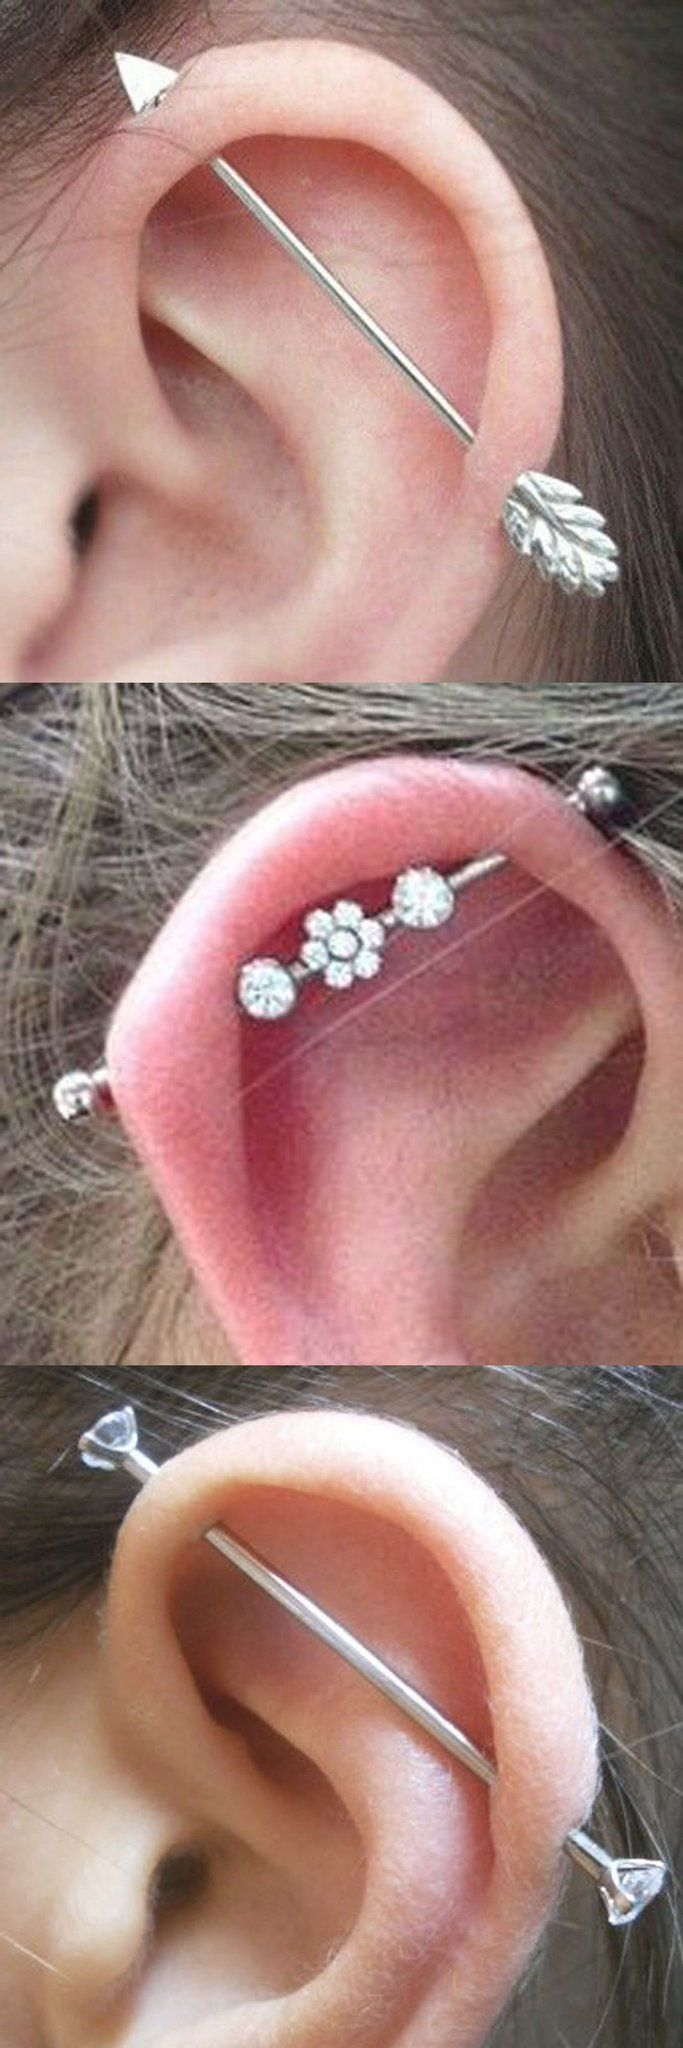 Double lobe piercing ideas   Trending Ear Piercing Ideas to Try This Summer   Industrial